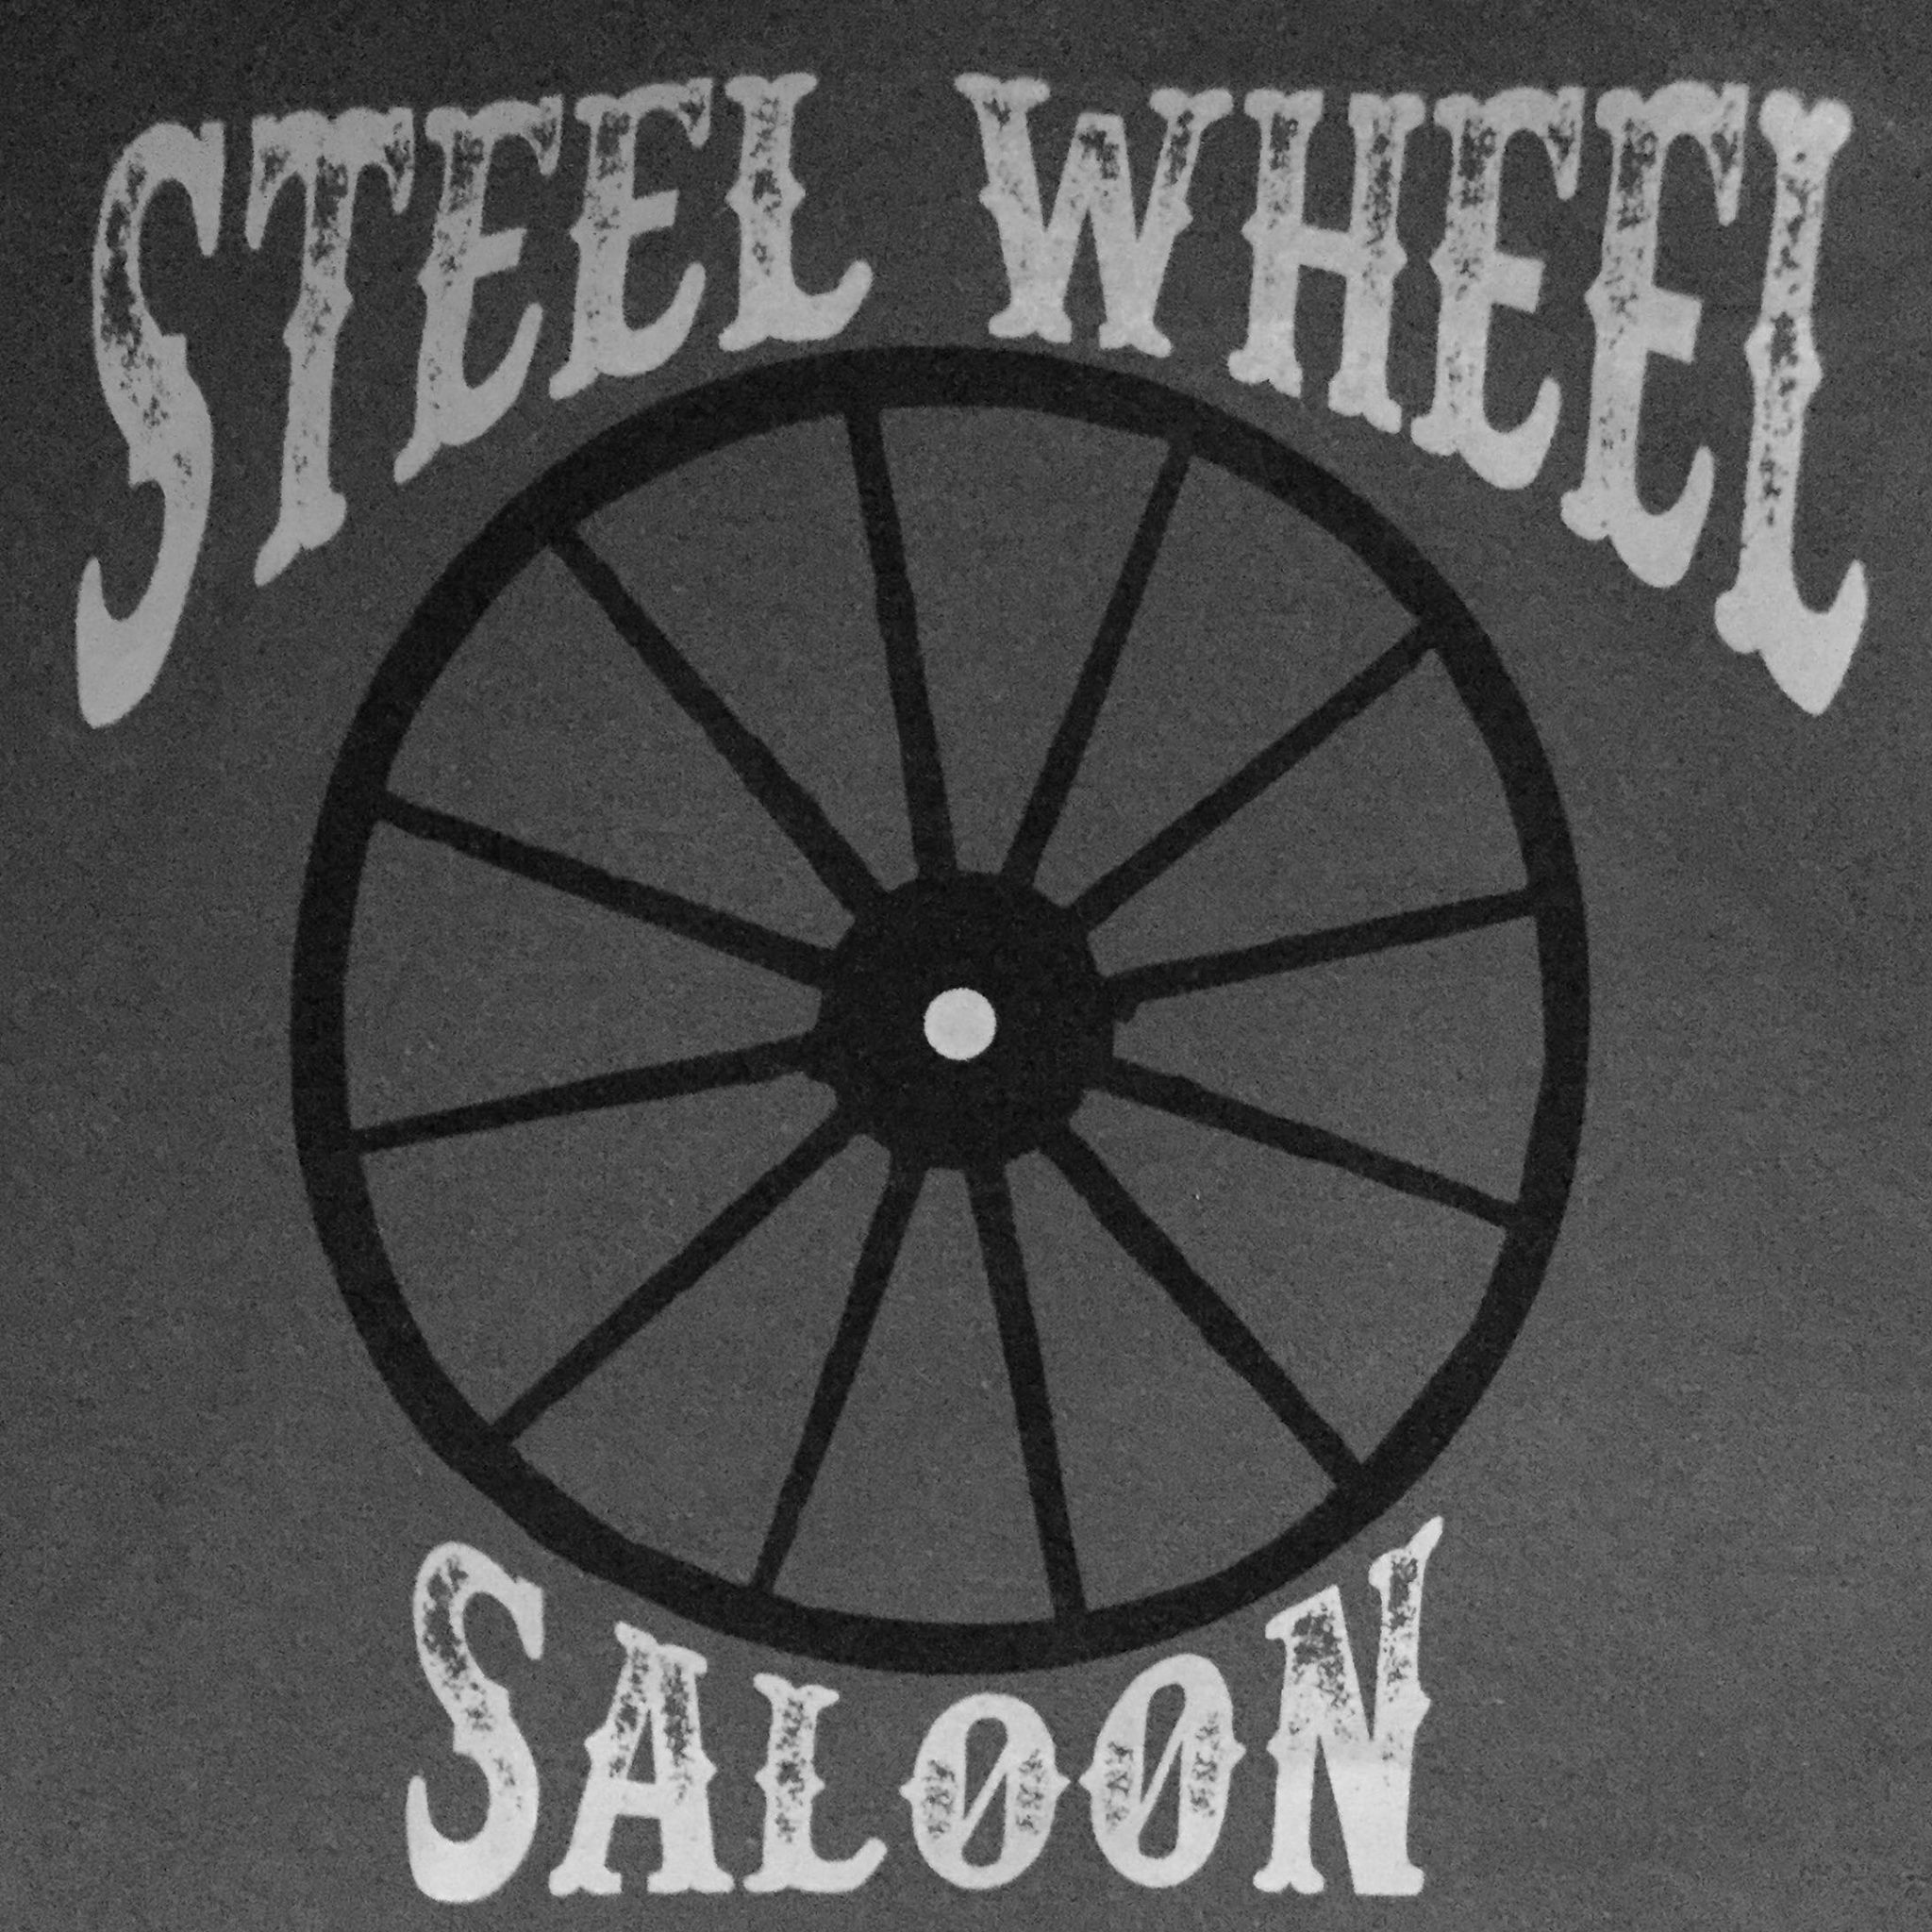 Steel Wheel Saloon